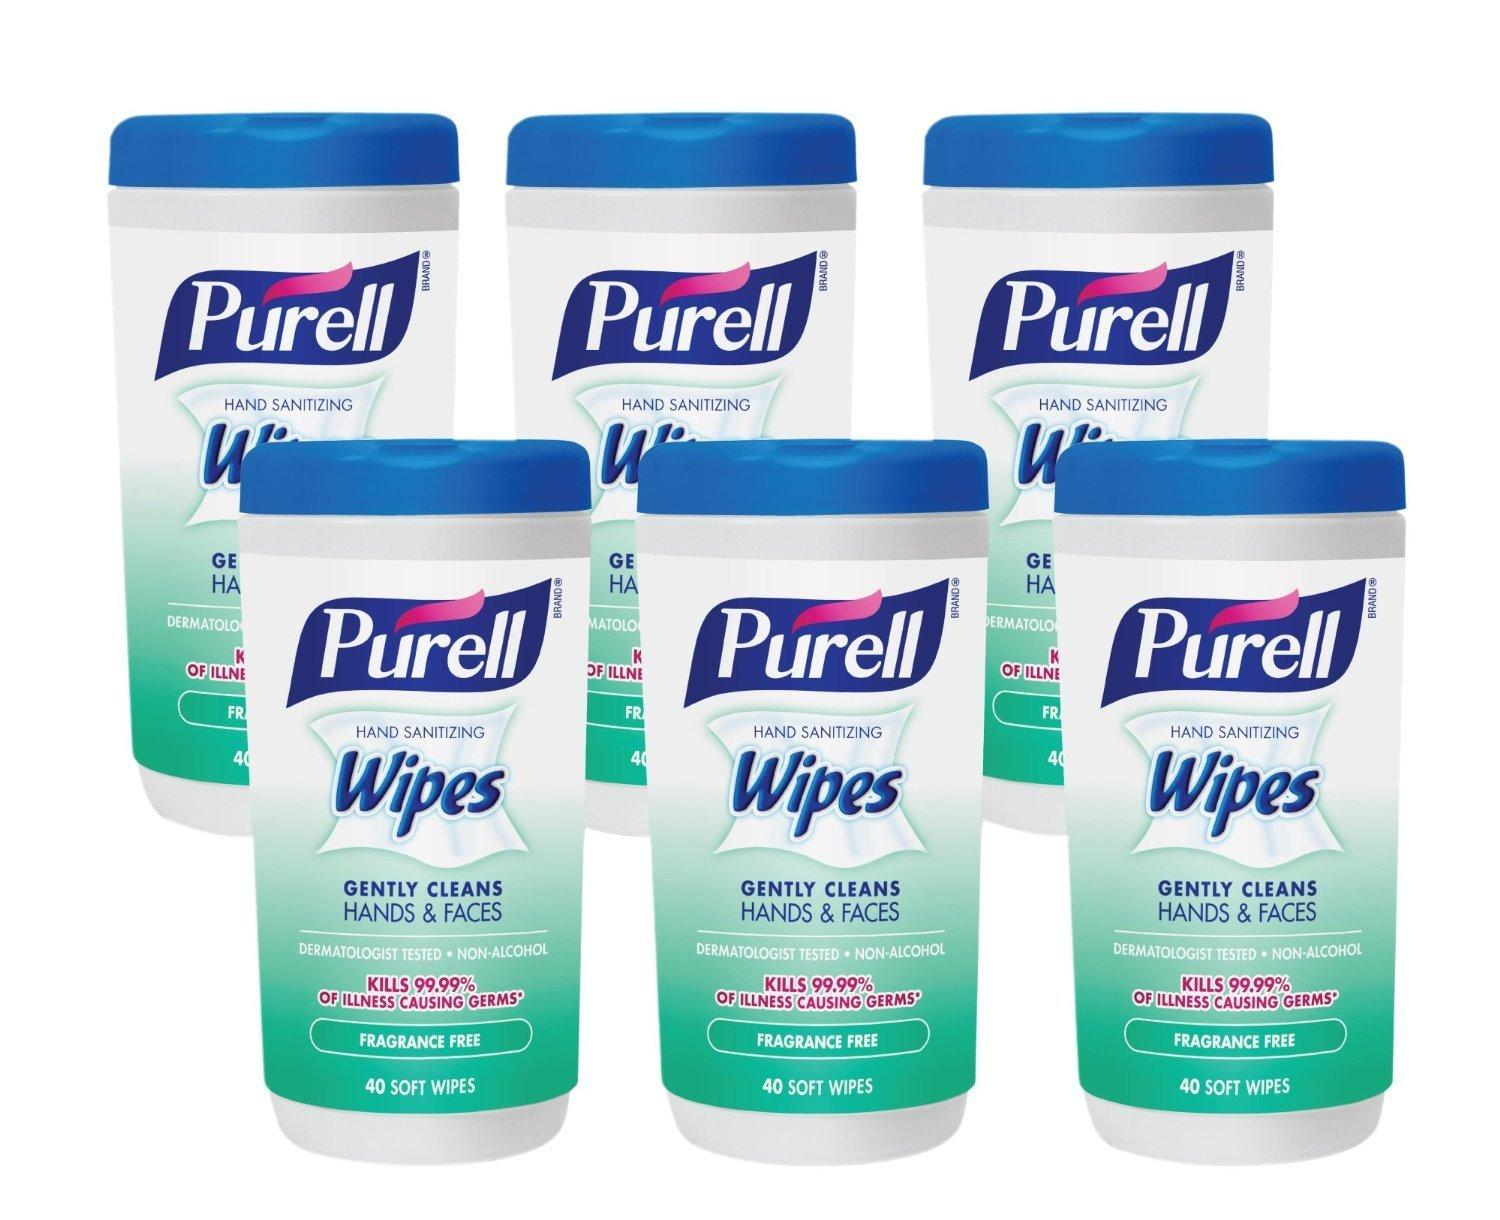 Purell Hand Sanitizing Wipes, Fragrance Free, 40 Count Canister (Pack of 6)